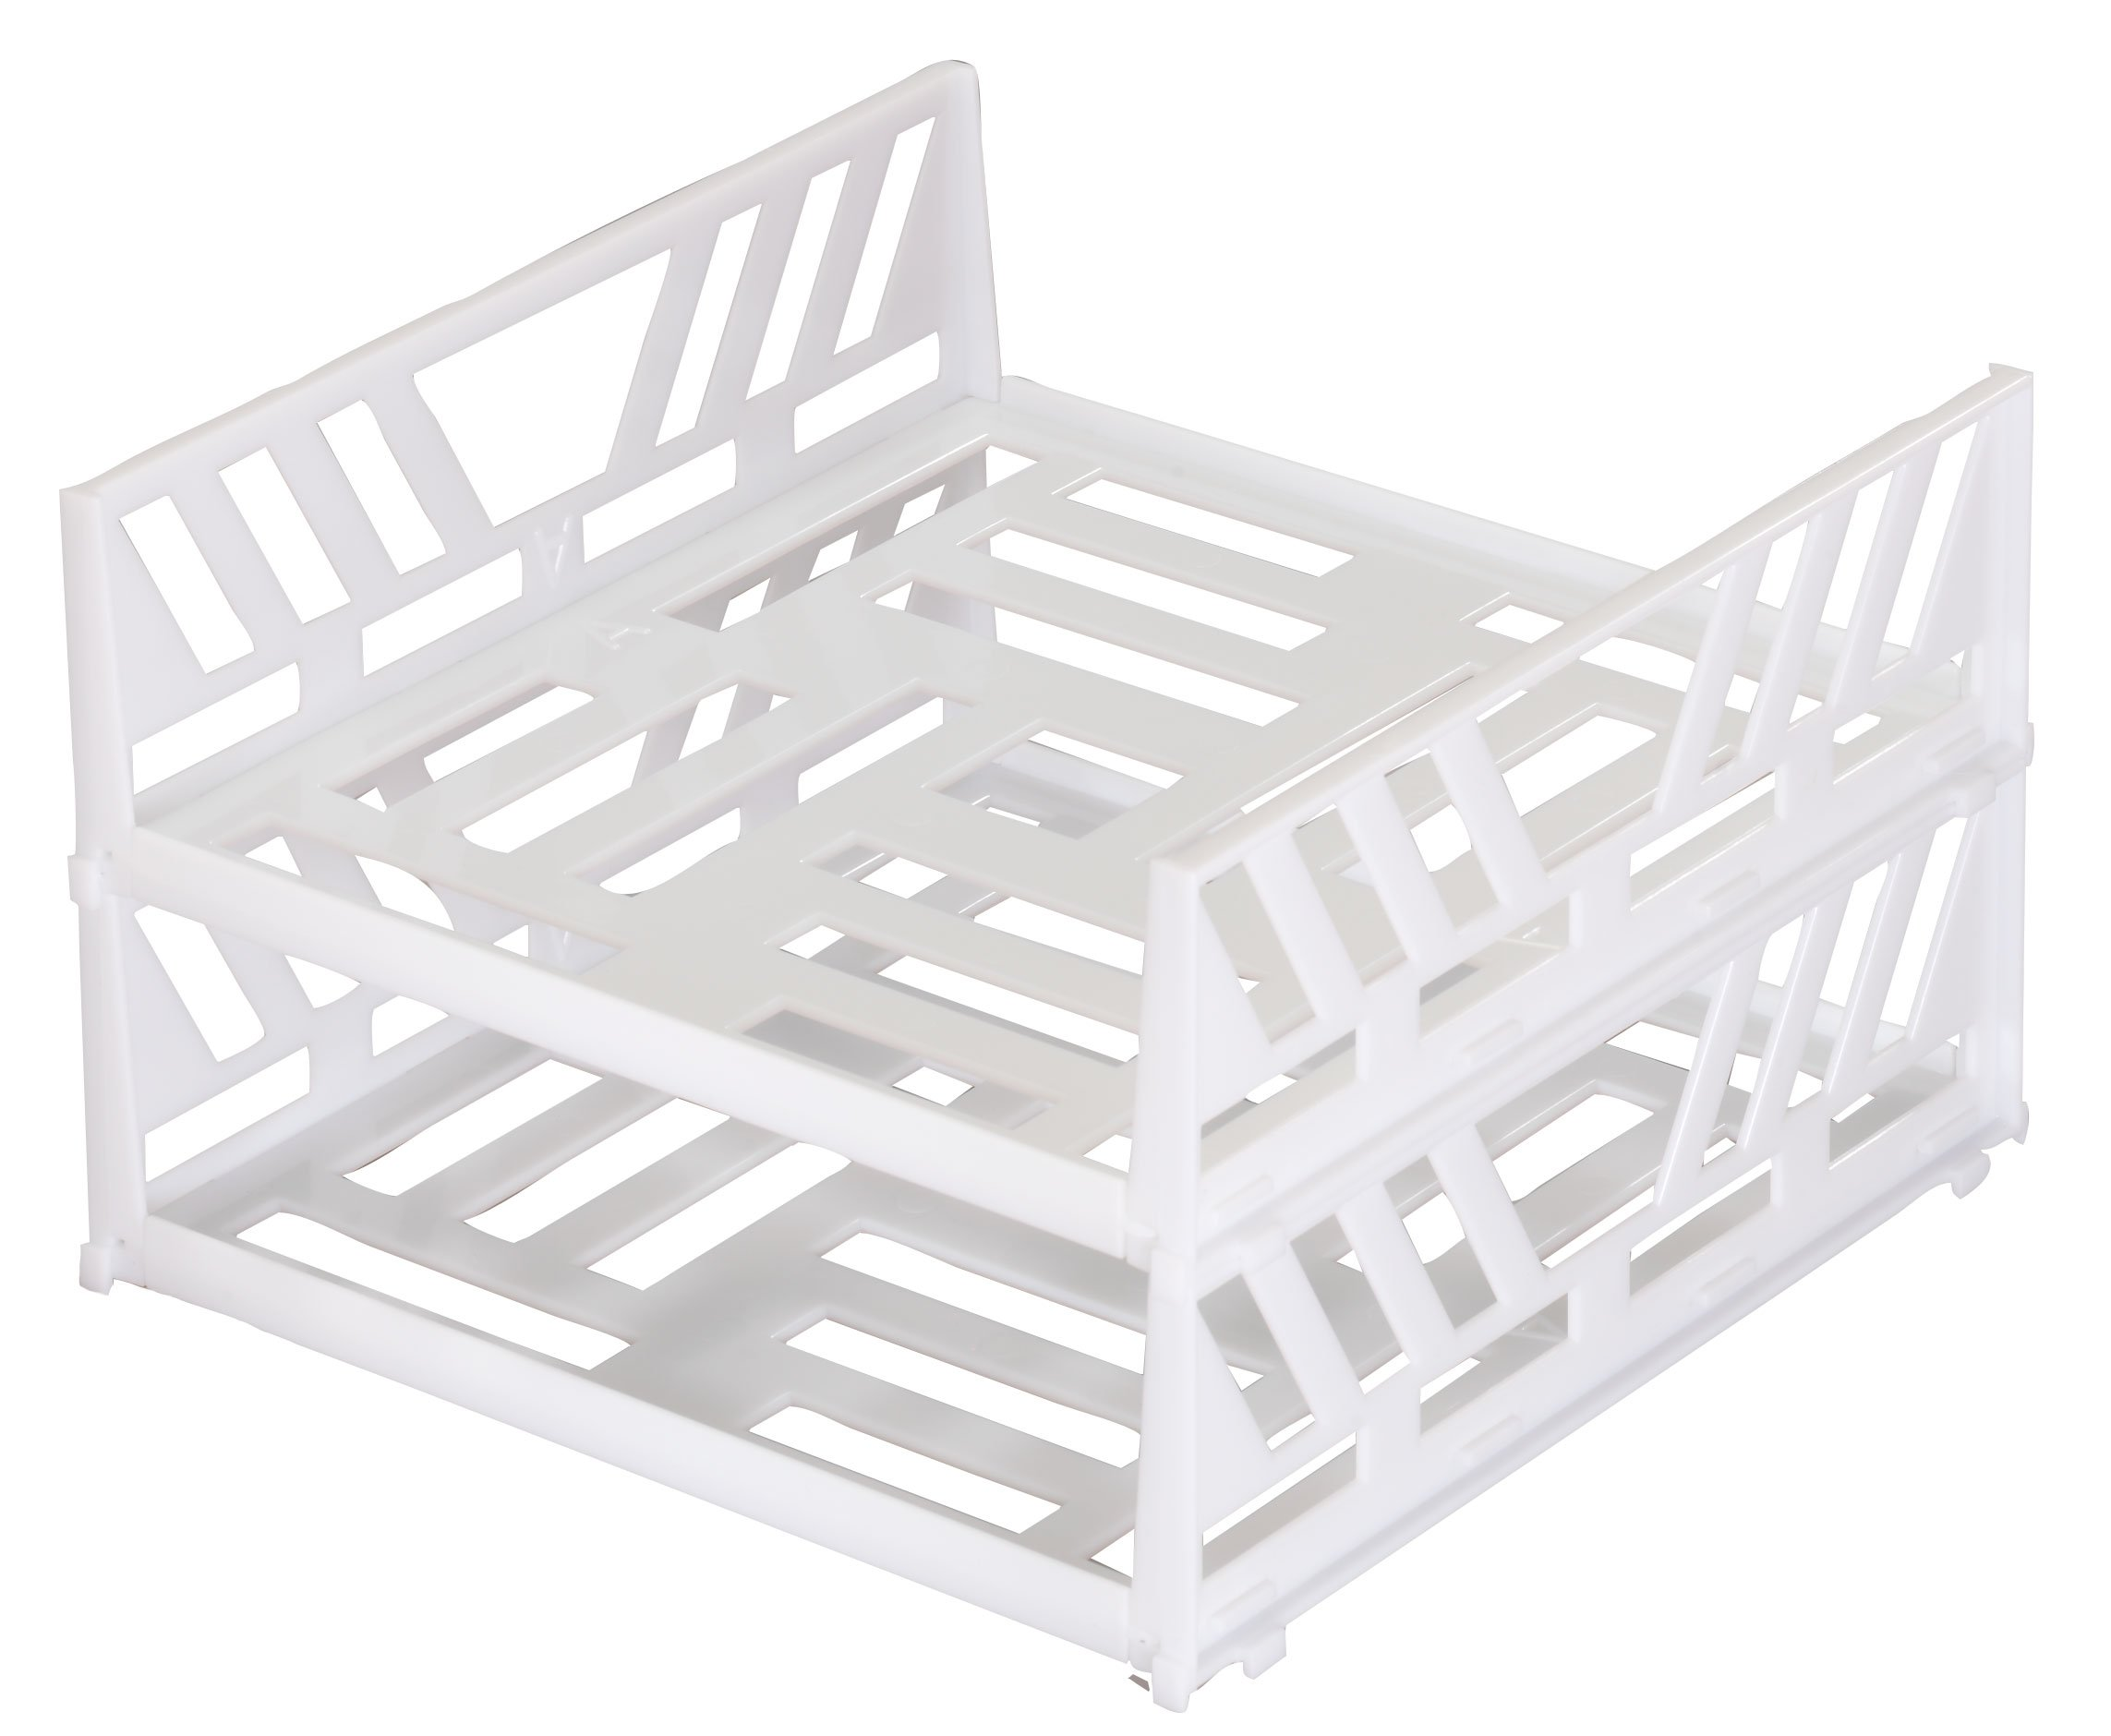 Stackable Freezer Shelves Set of 2 By Jumbl